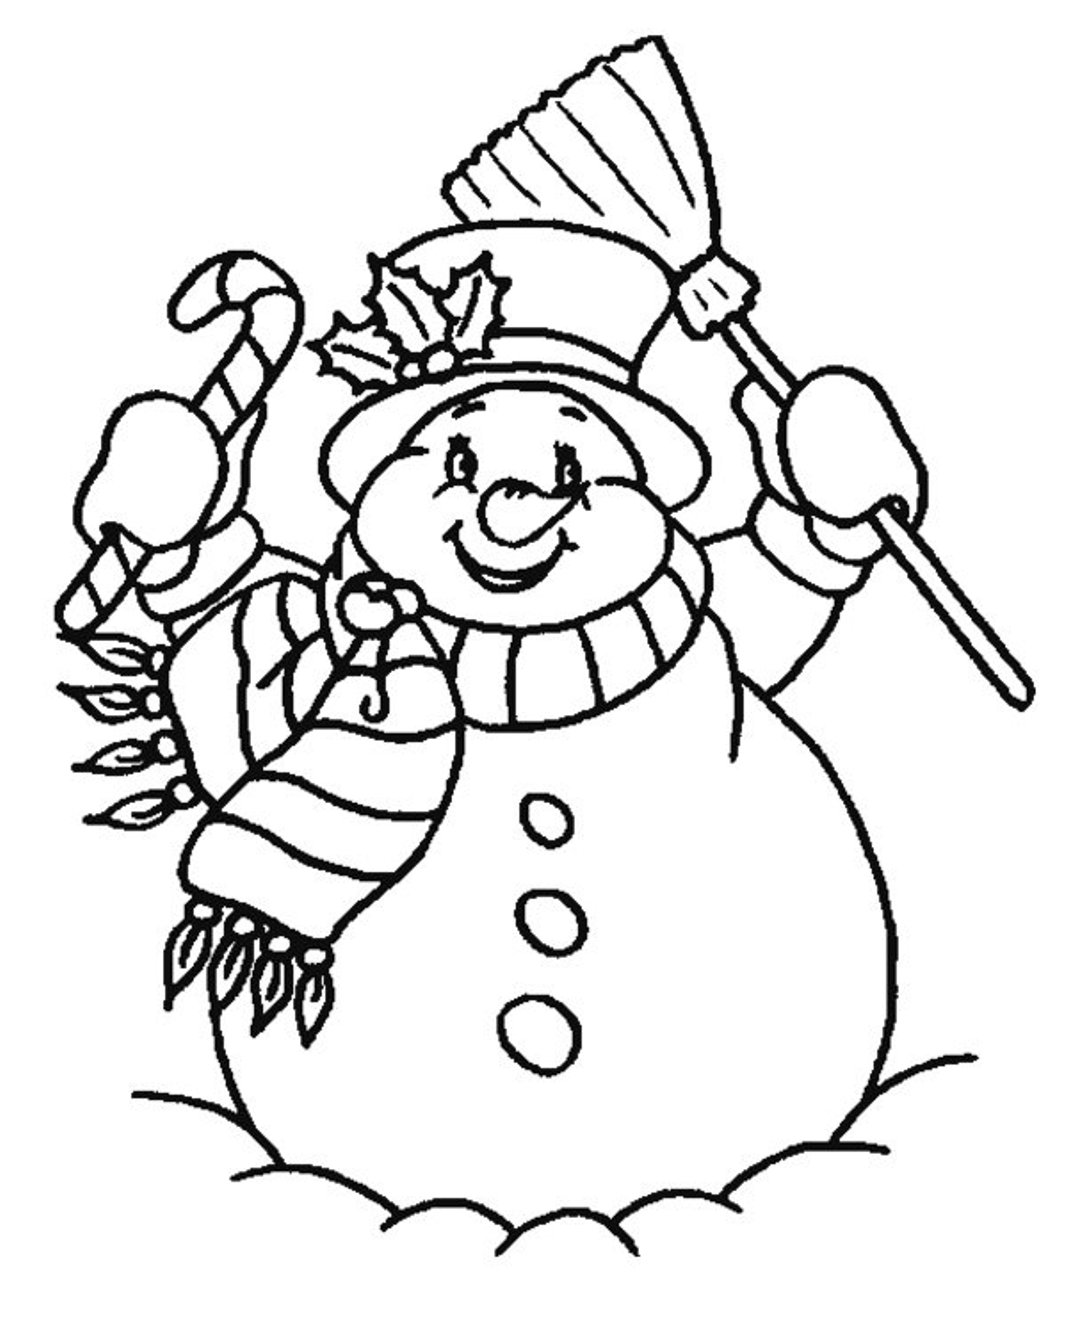 snowman coloring sheet free snowman clipart template printable coloring pages sheet snowman coloring